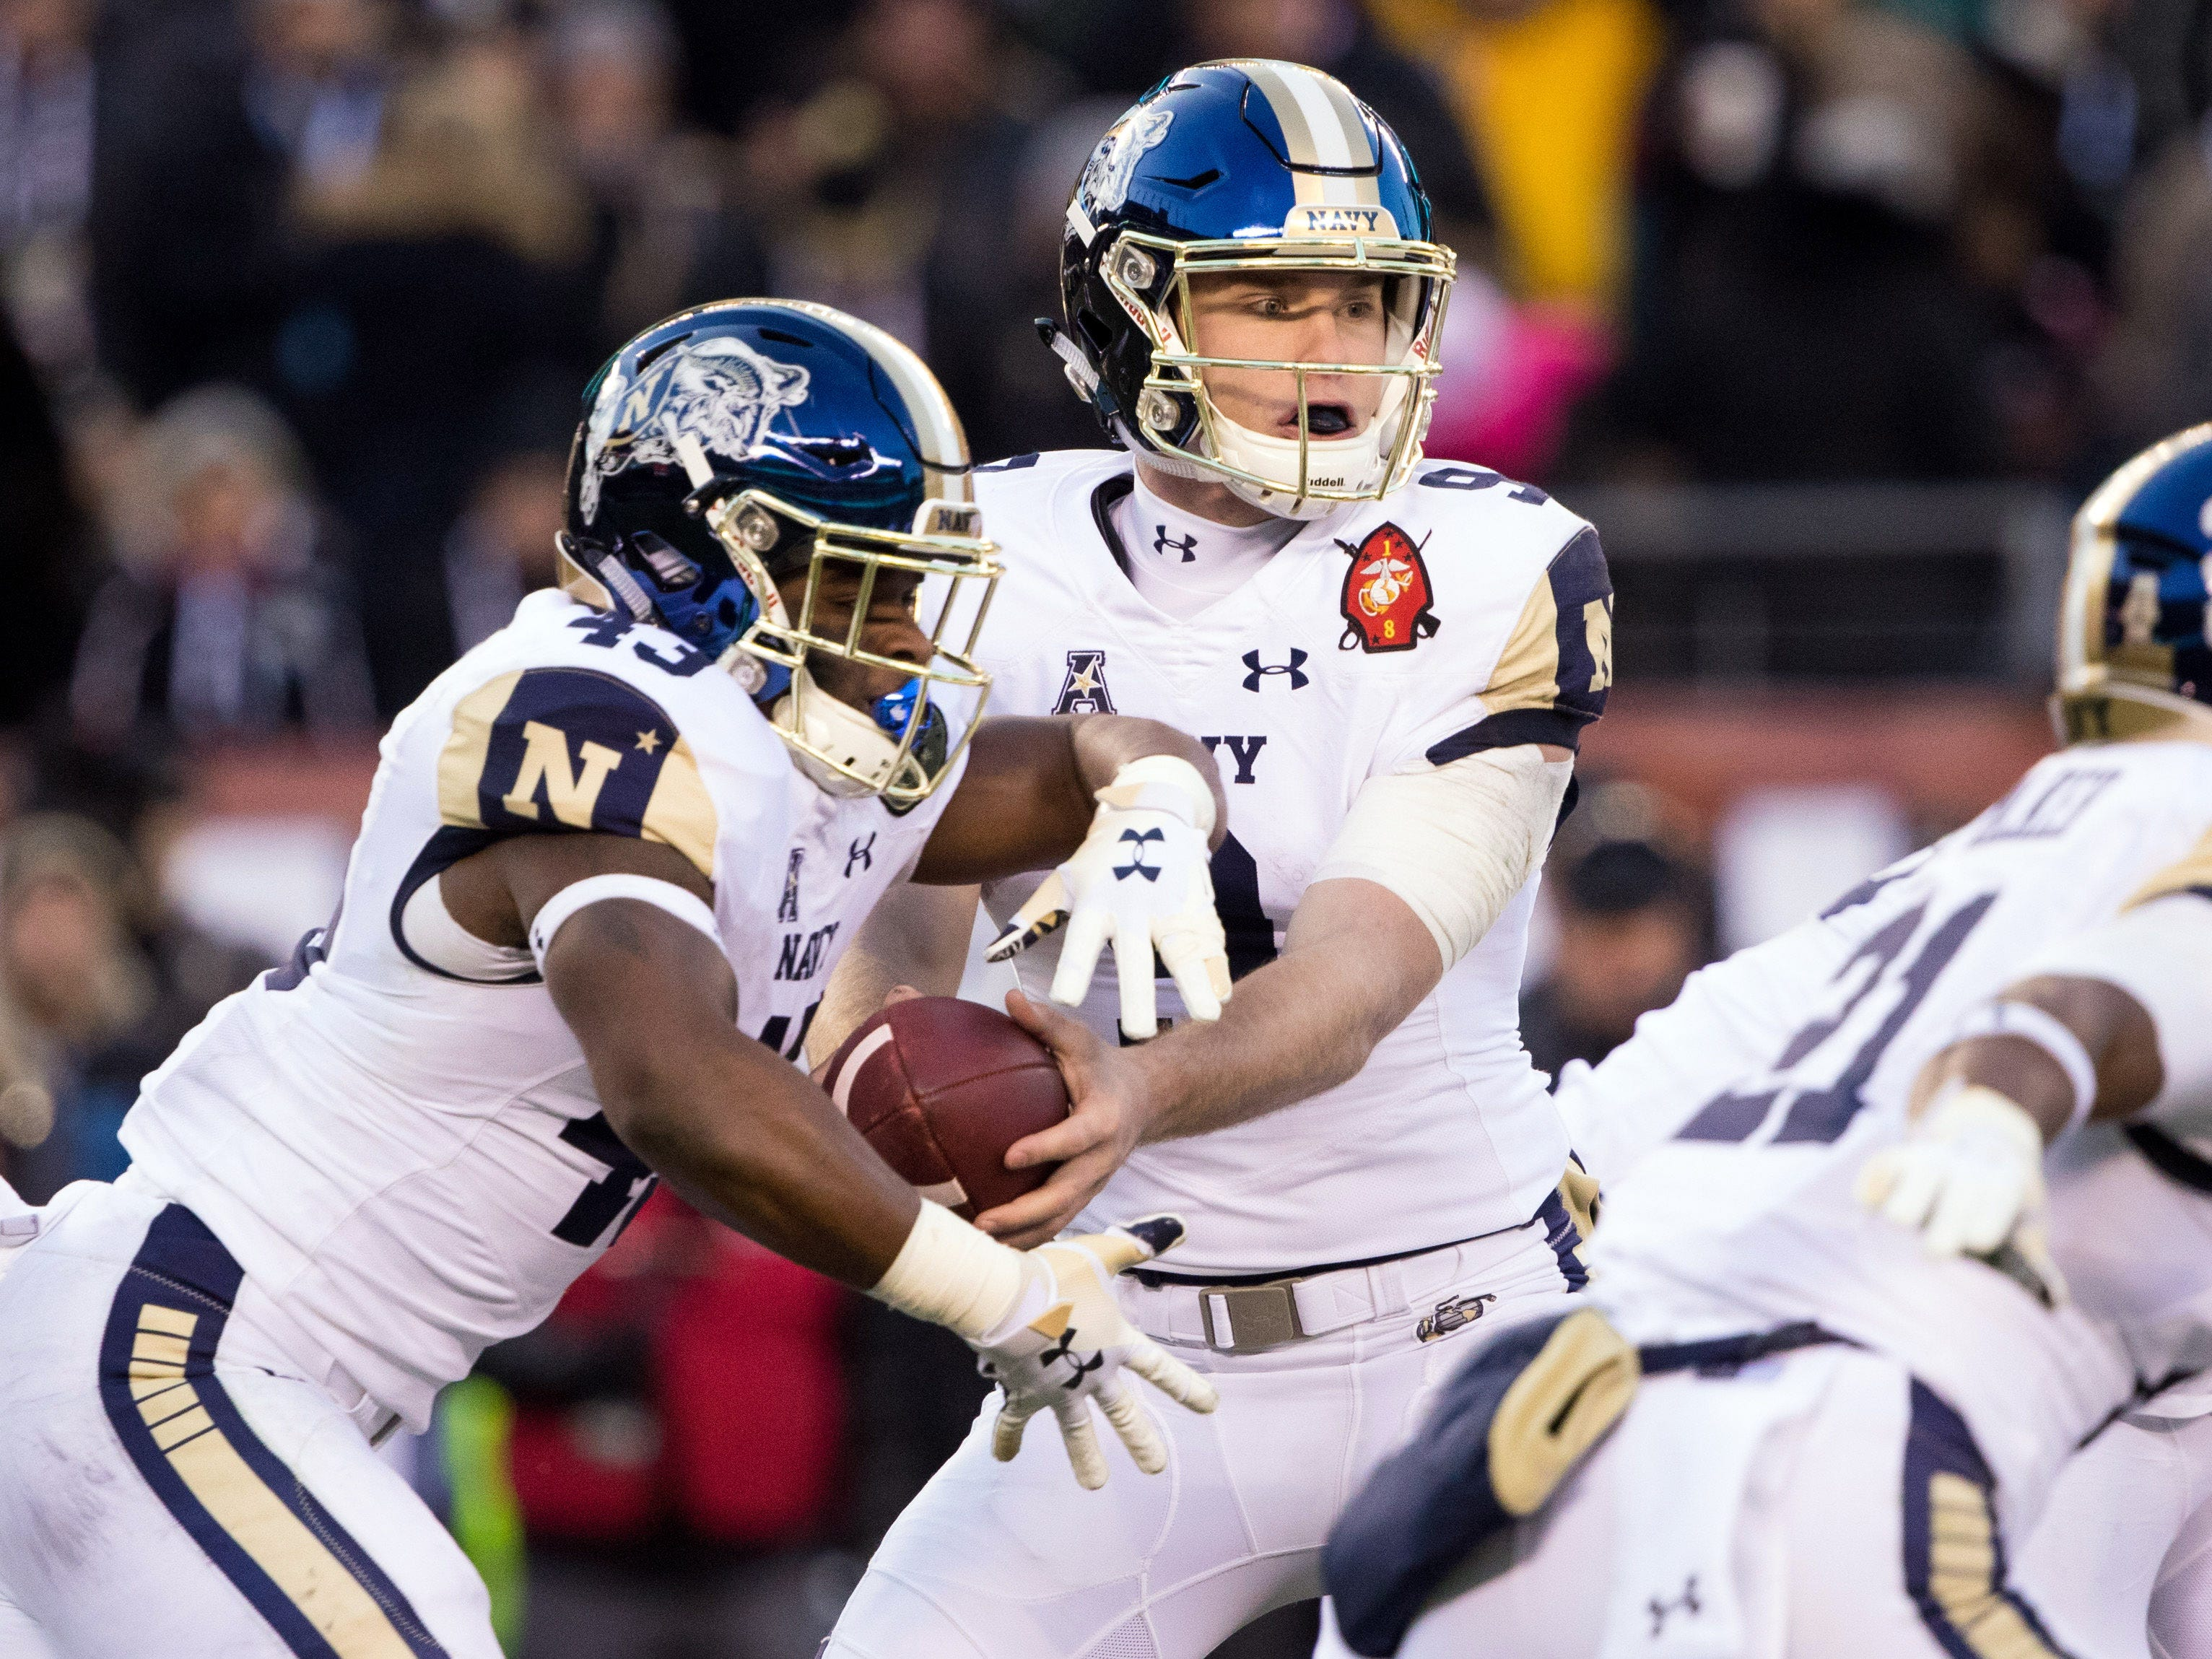 Navy Midshipmen quarterback Zach Abey hands off to fullback Nelson Smith during the second quarter.